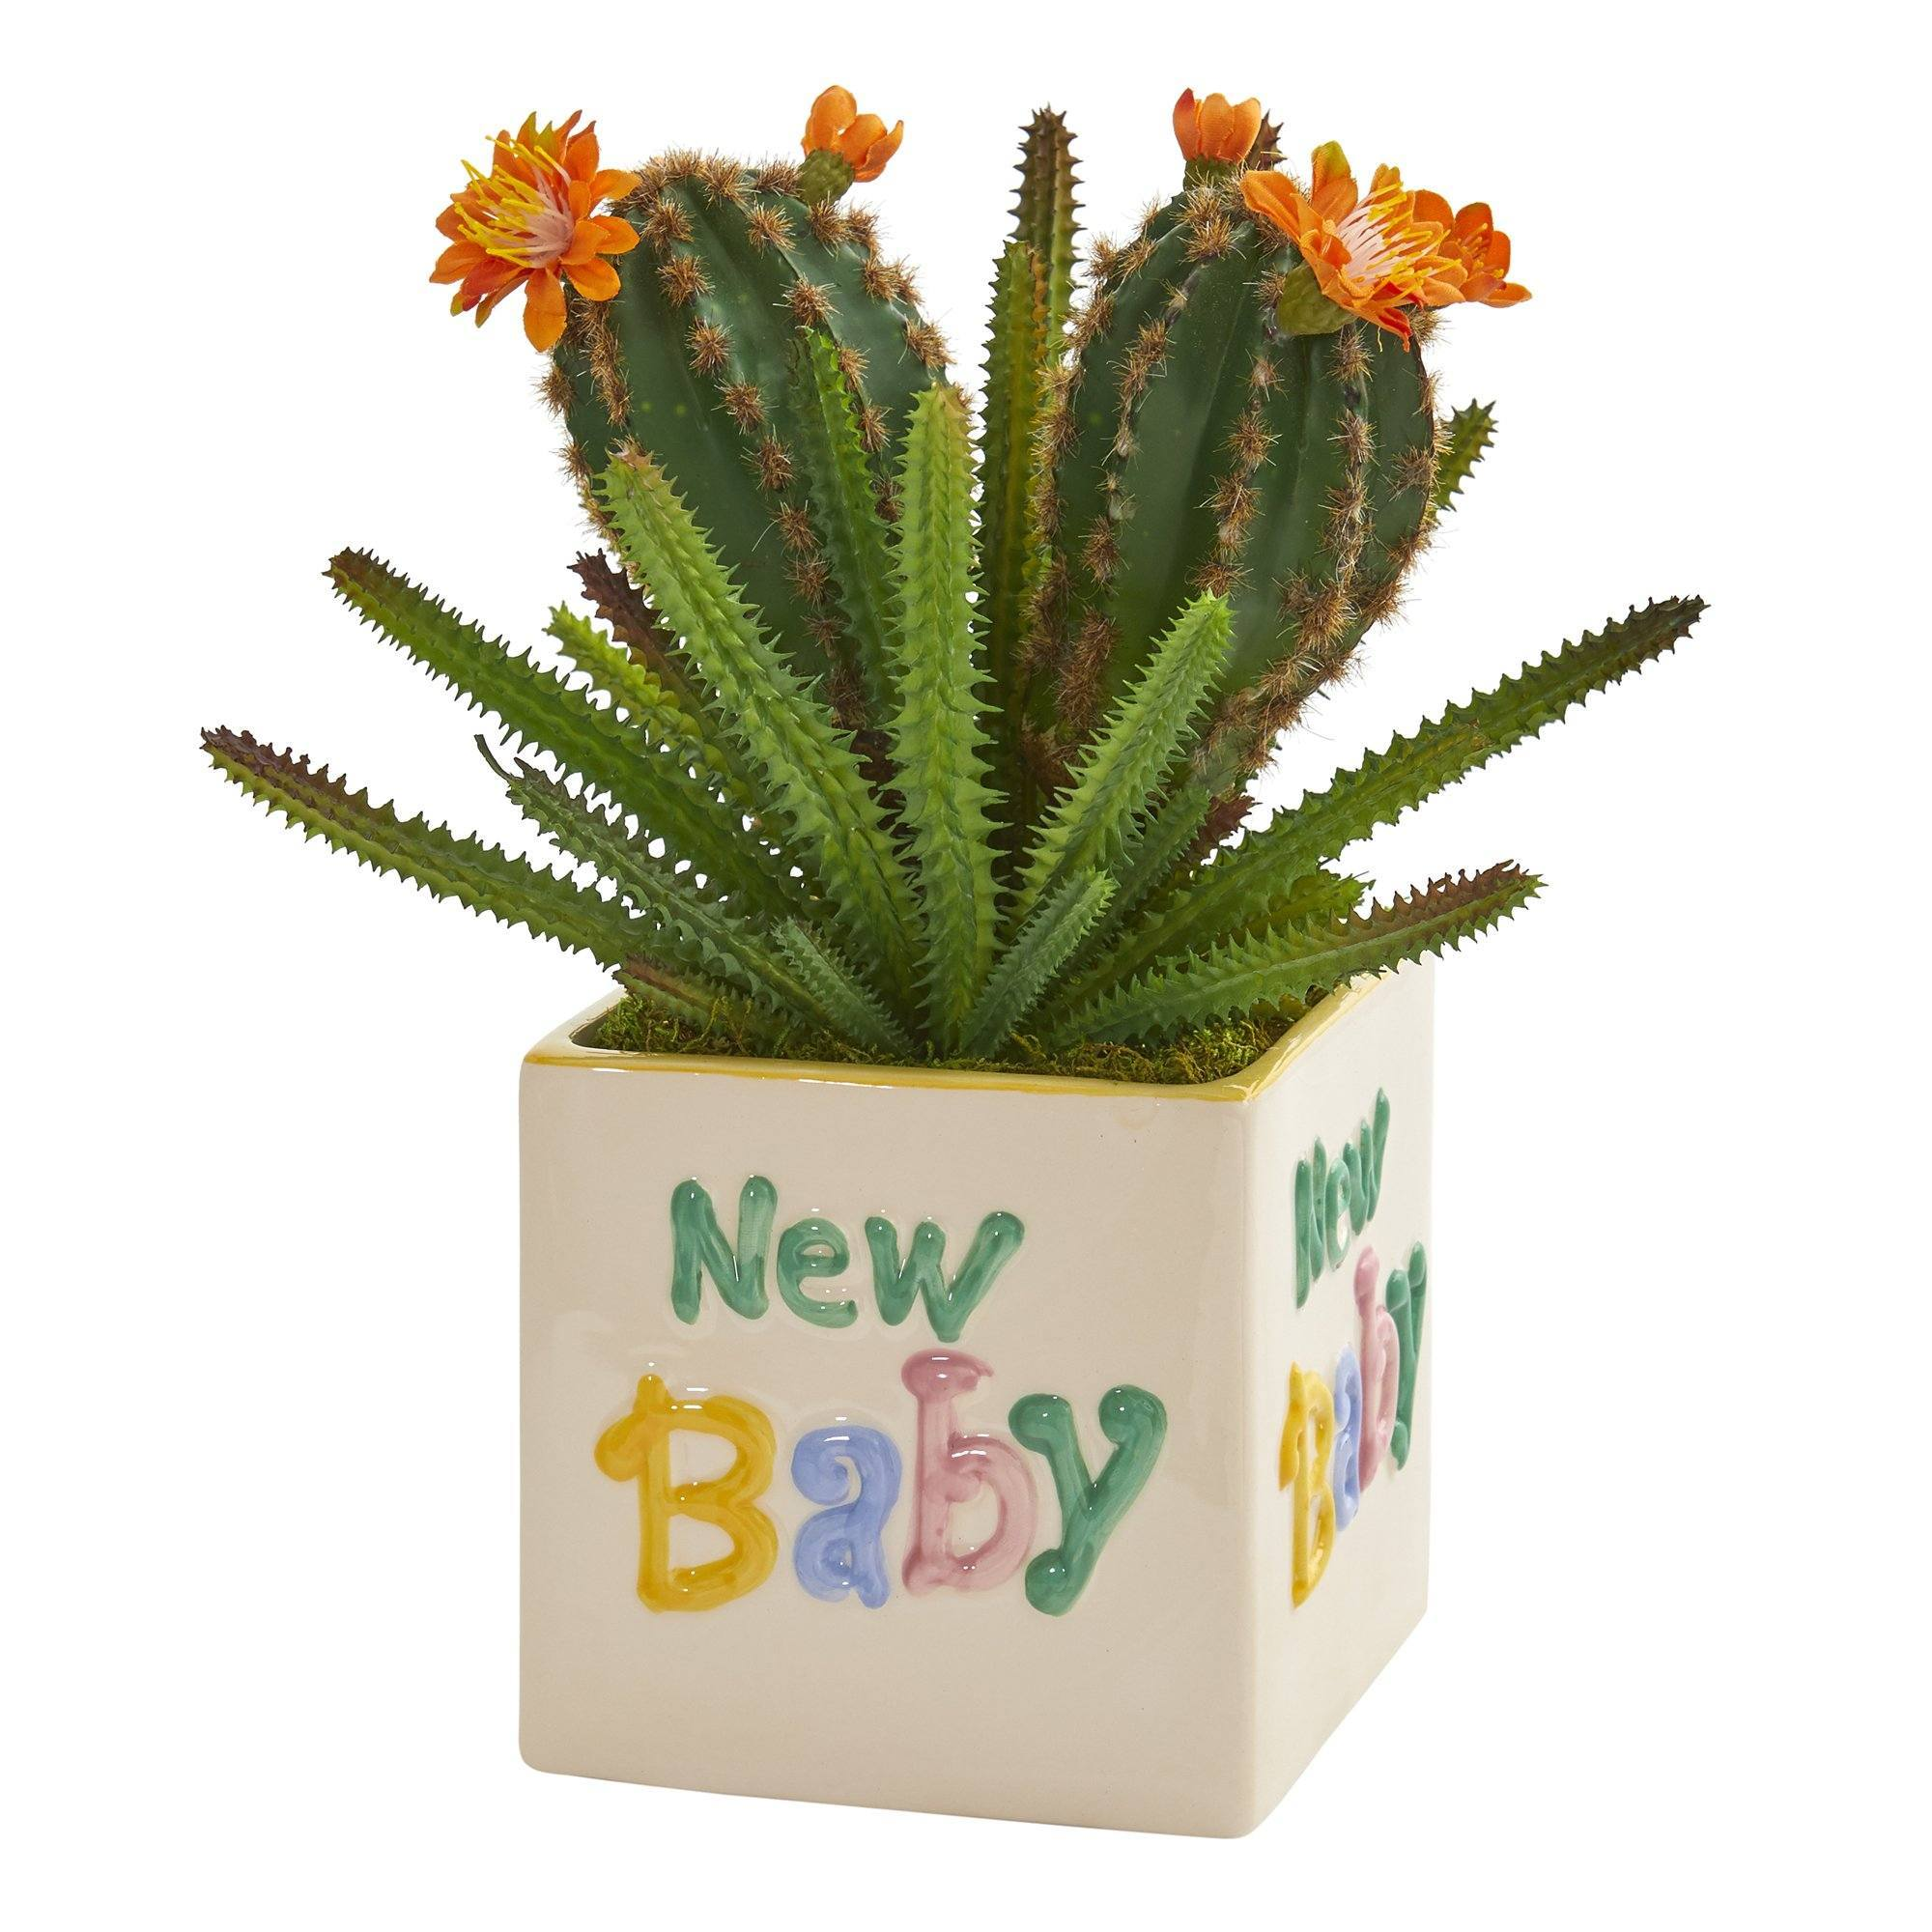 11 Cactus Succulent Artificial Plant In New Baby Planter Nearly Natural